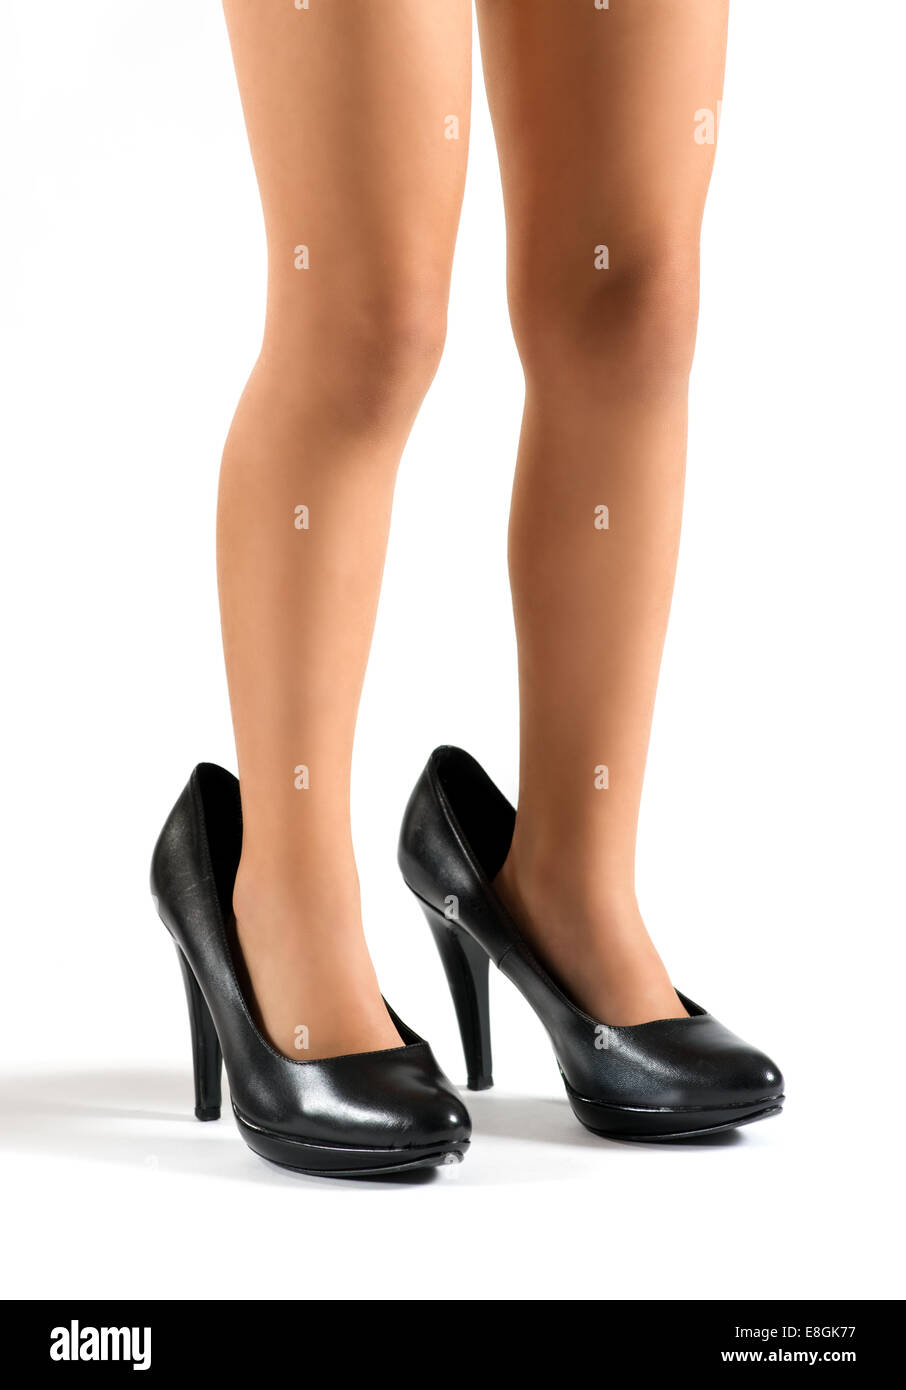 Big shoes - Stock Image